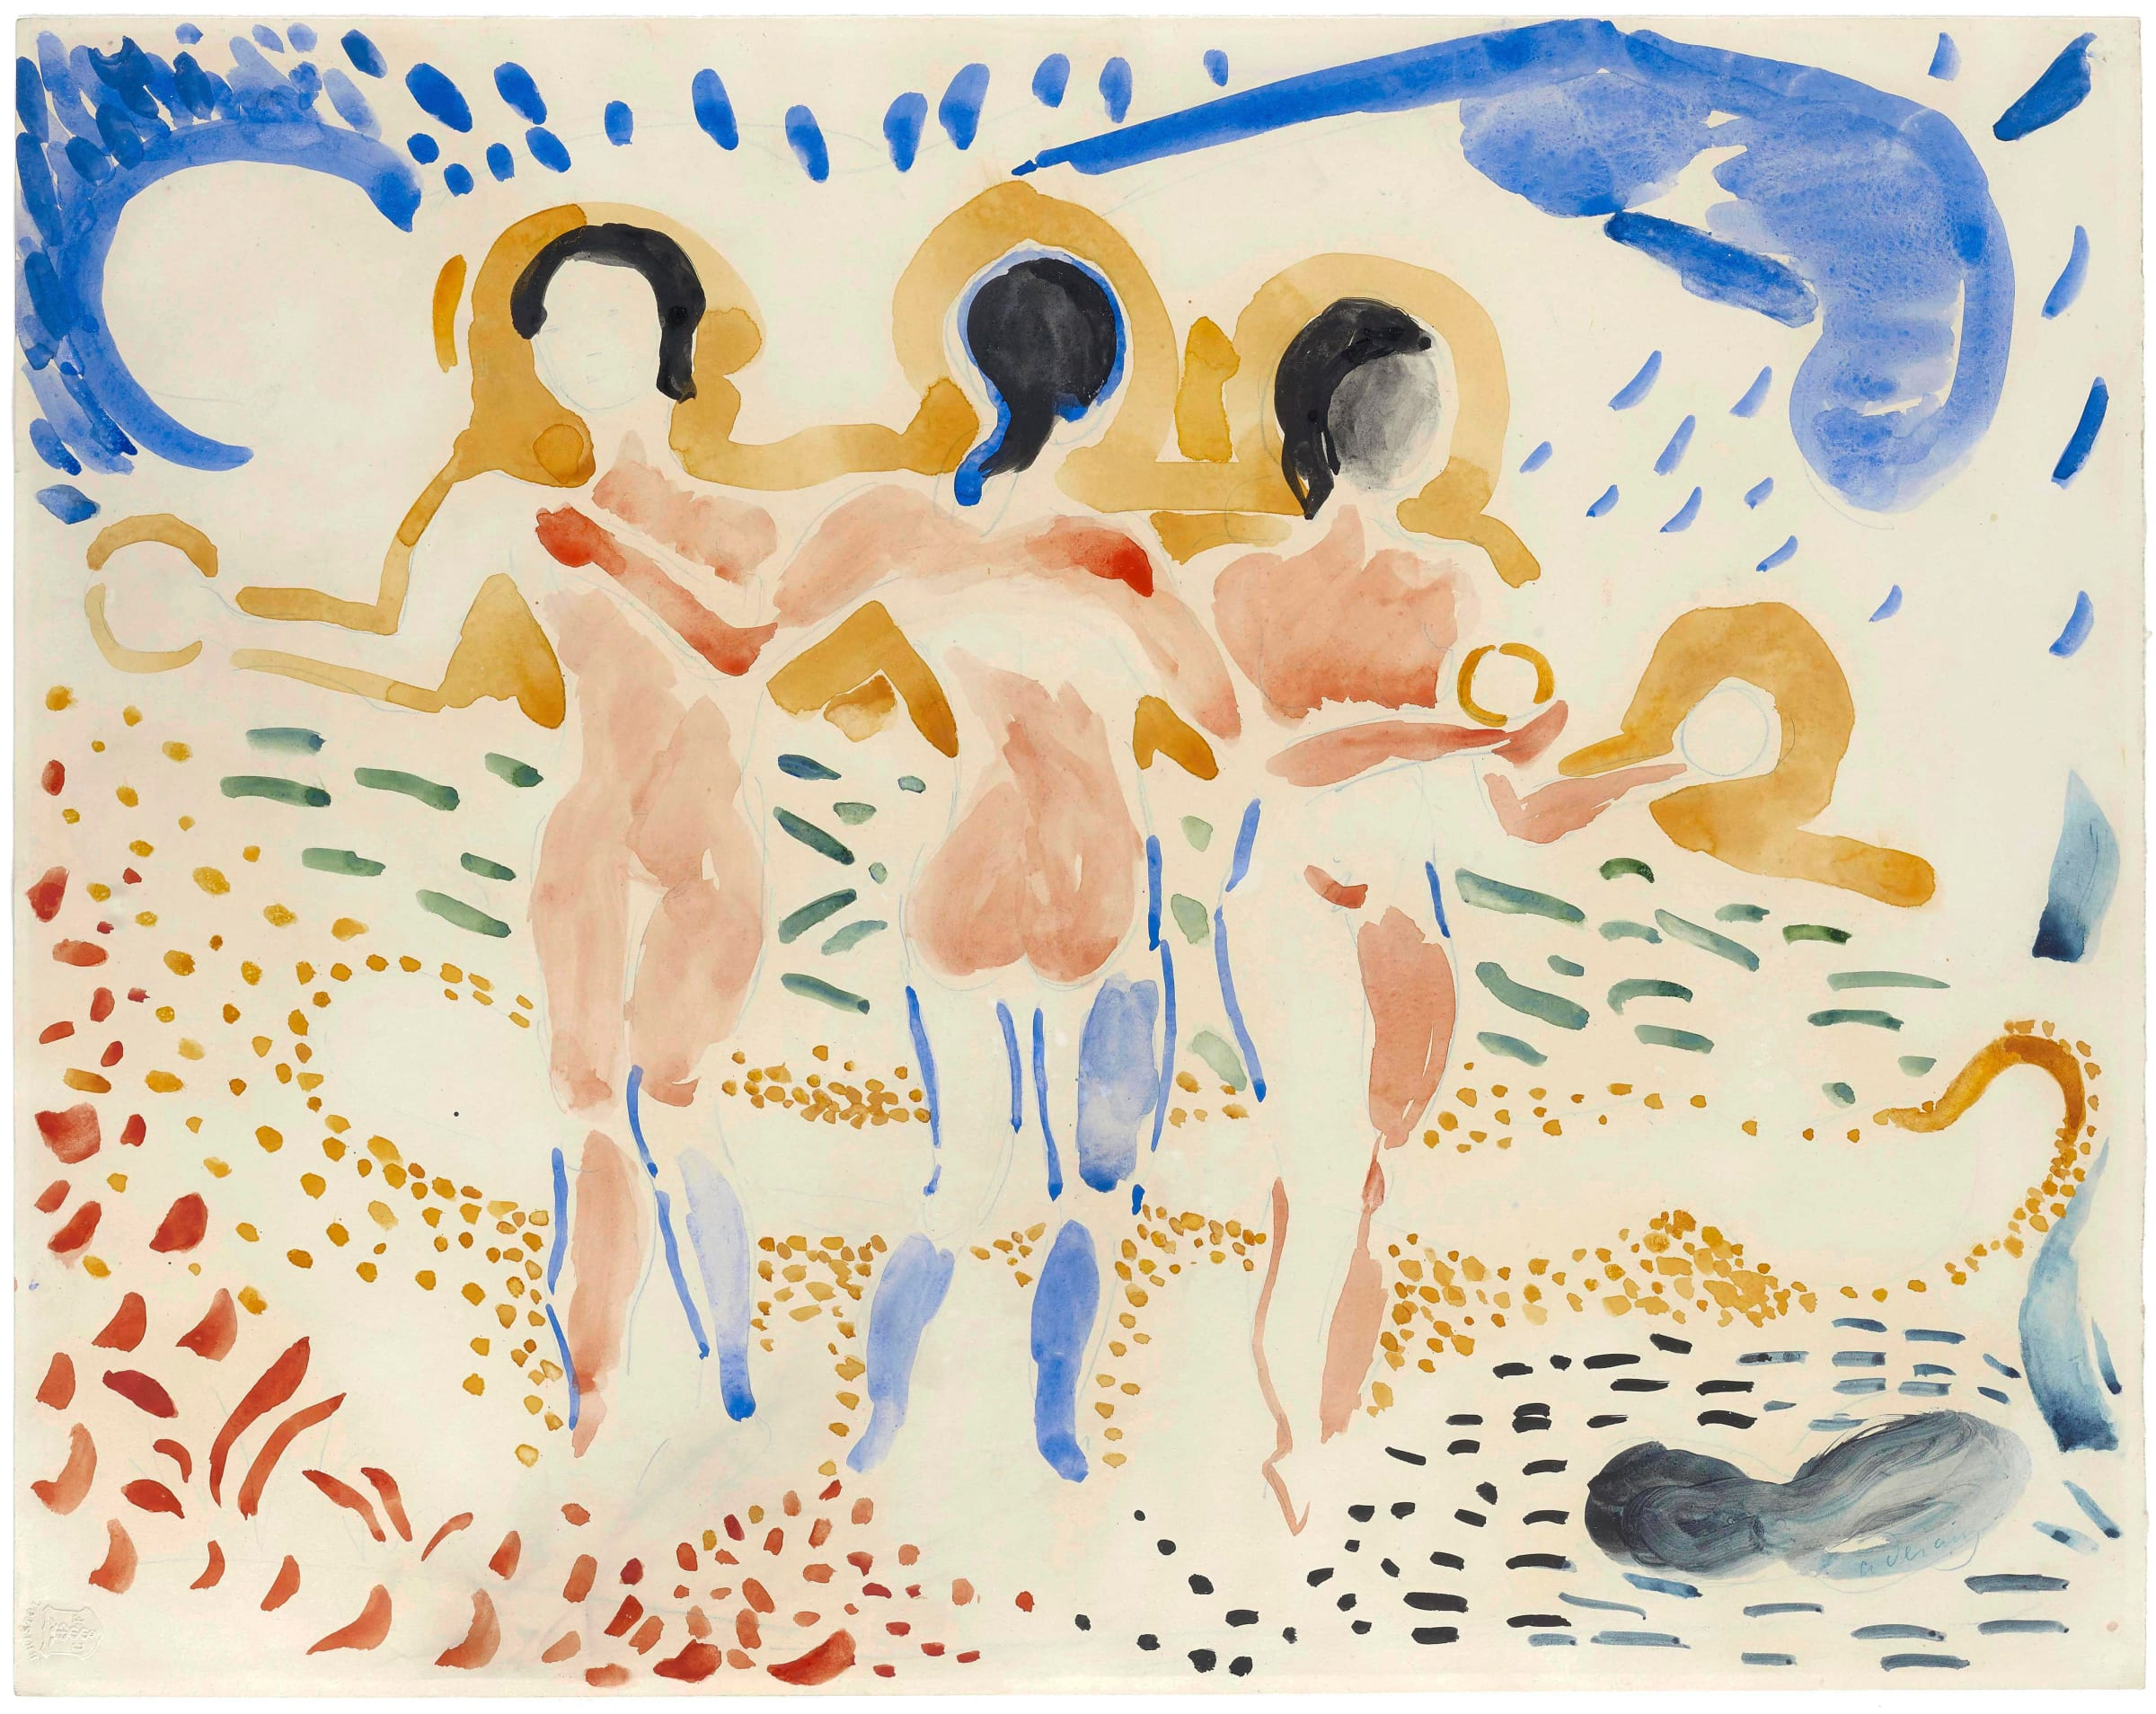 "<span class=""link fancybox-details-link""><a href=""/exhibitions/14/works/artworks_standalone9388/"">View Detail Page</a></span><div class=""signed_and_dated"">Signed lower right a.derain Watermark Bristol lower left</div>